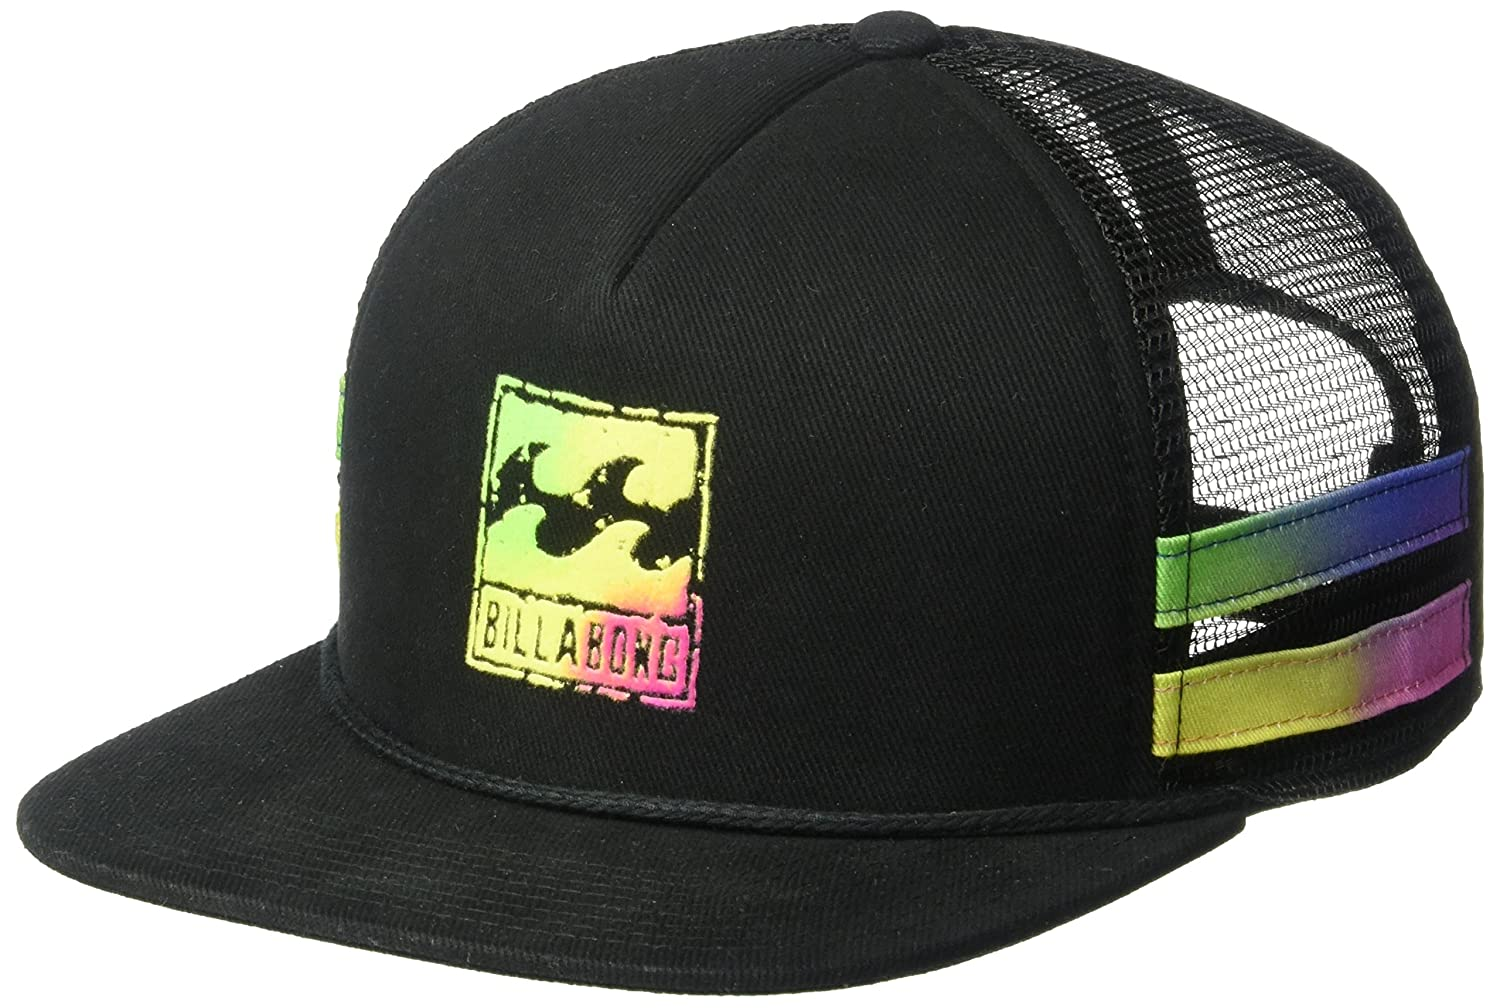 BILLABONG Gorra Trucker Reissue Negro - Ajustable: Amazon.es: Ropa ...